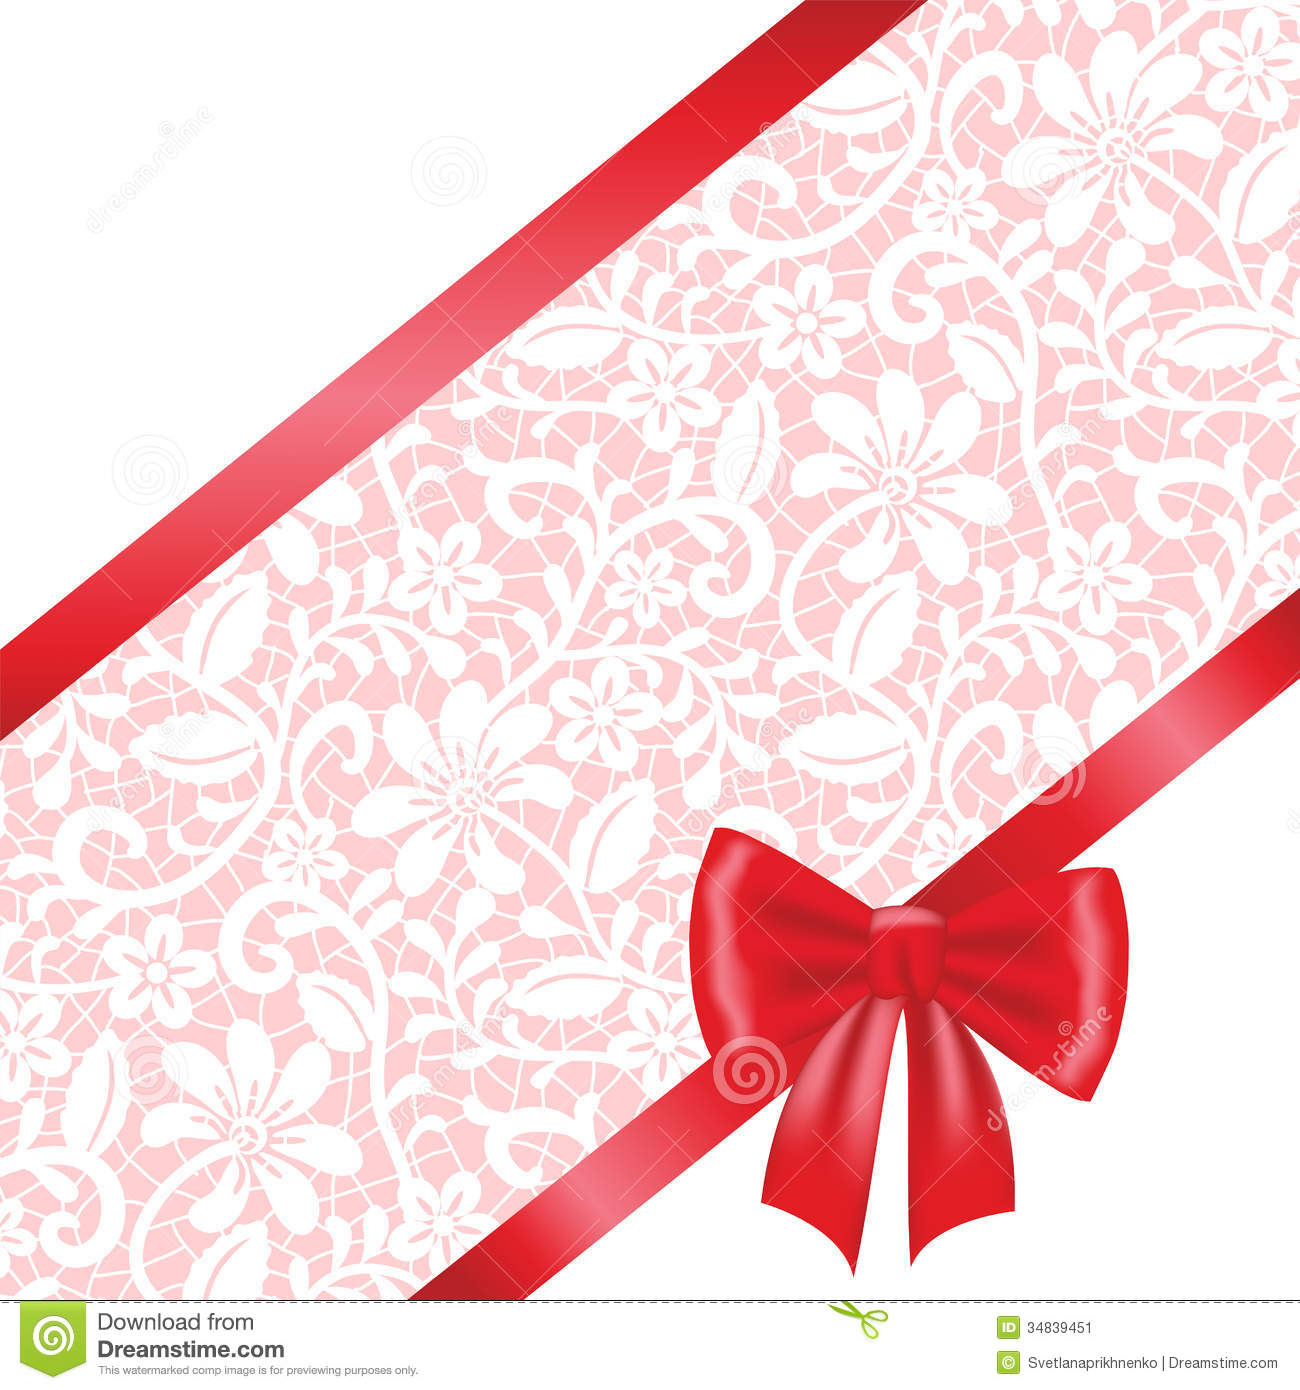 Lace Fabric Background With Ribbon Bow Stock Vector - Illustration ...